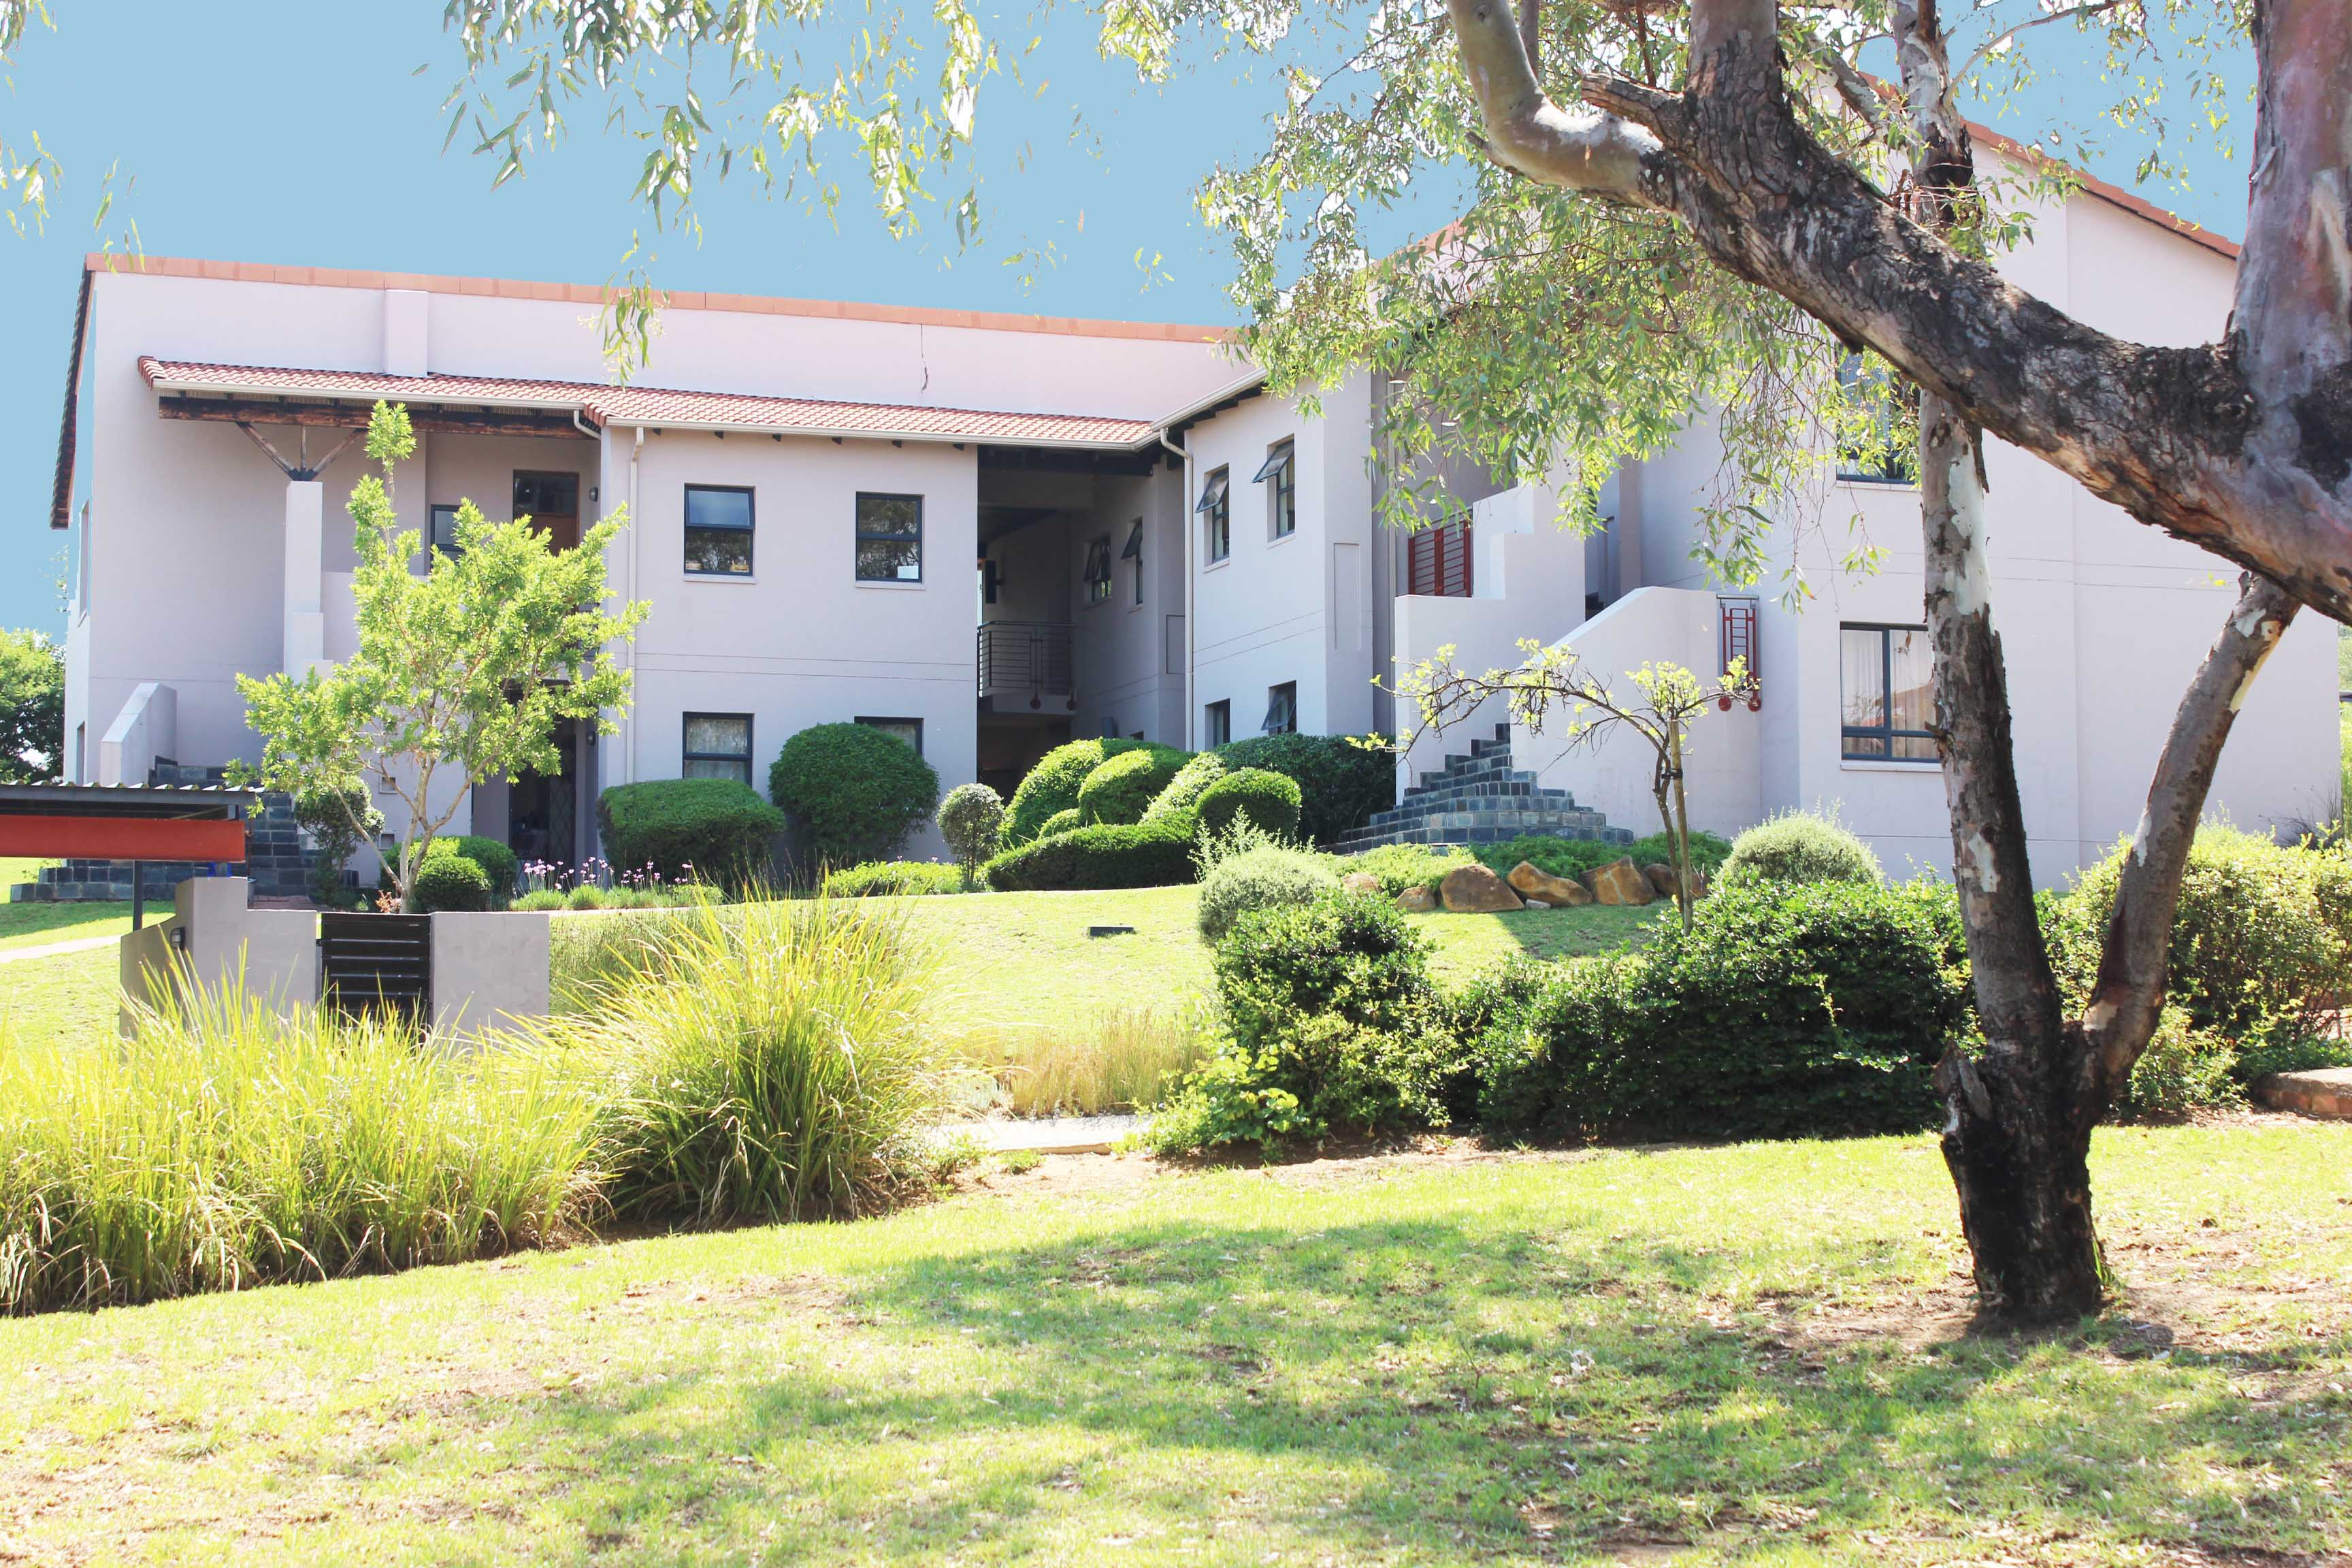 2 BedroomApartment For Sale In Roodepoort